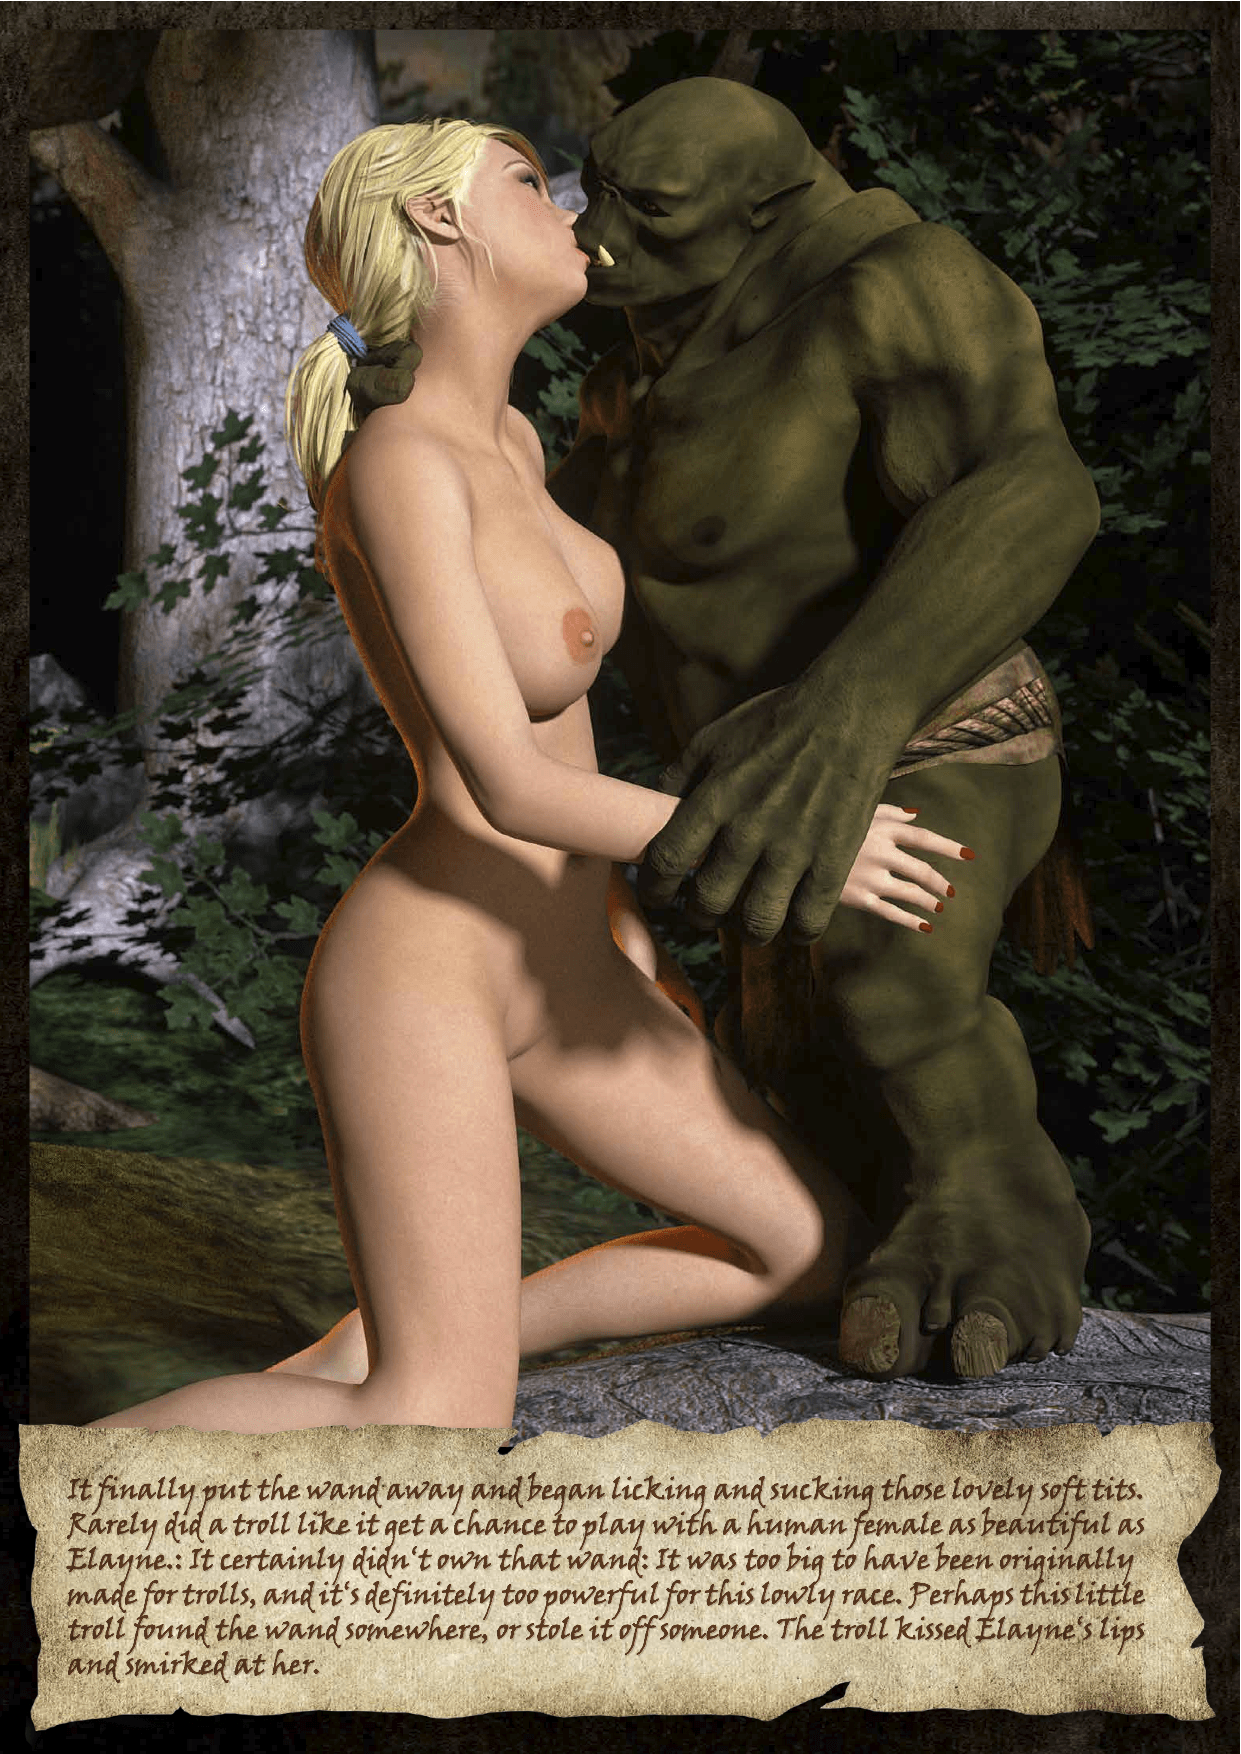 Sample of Knight Elayne: Dark Eyes in the Forest. Art by Hibbli, Story by Lady Adara. Available at the Affect3D Store.